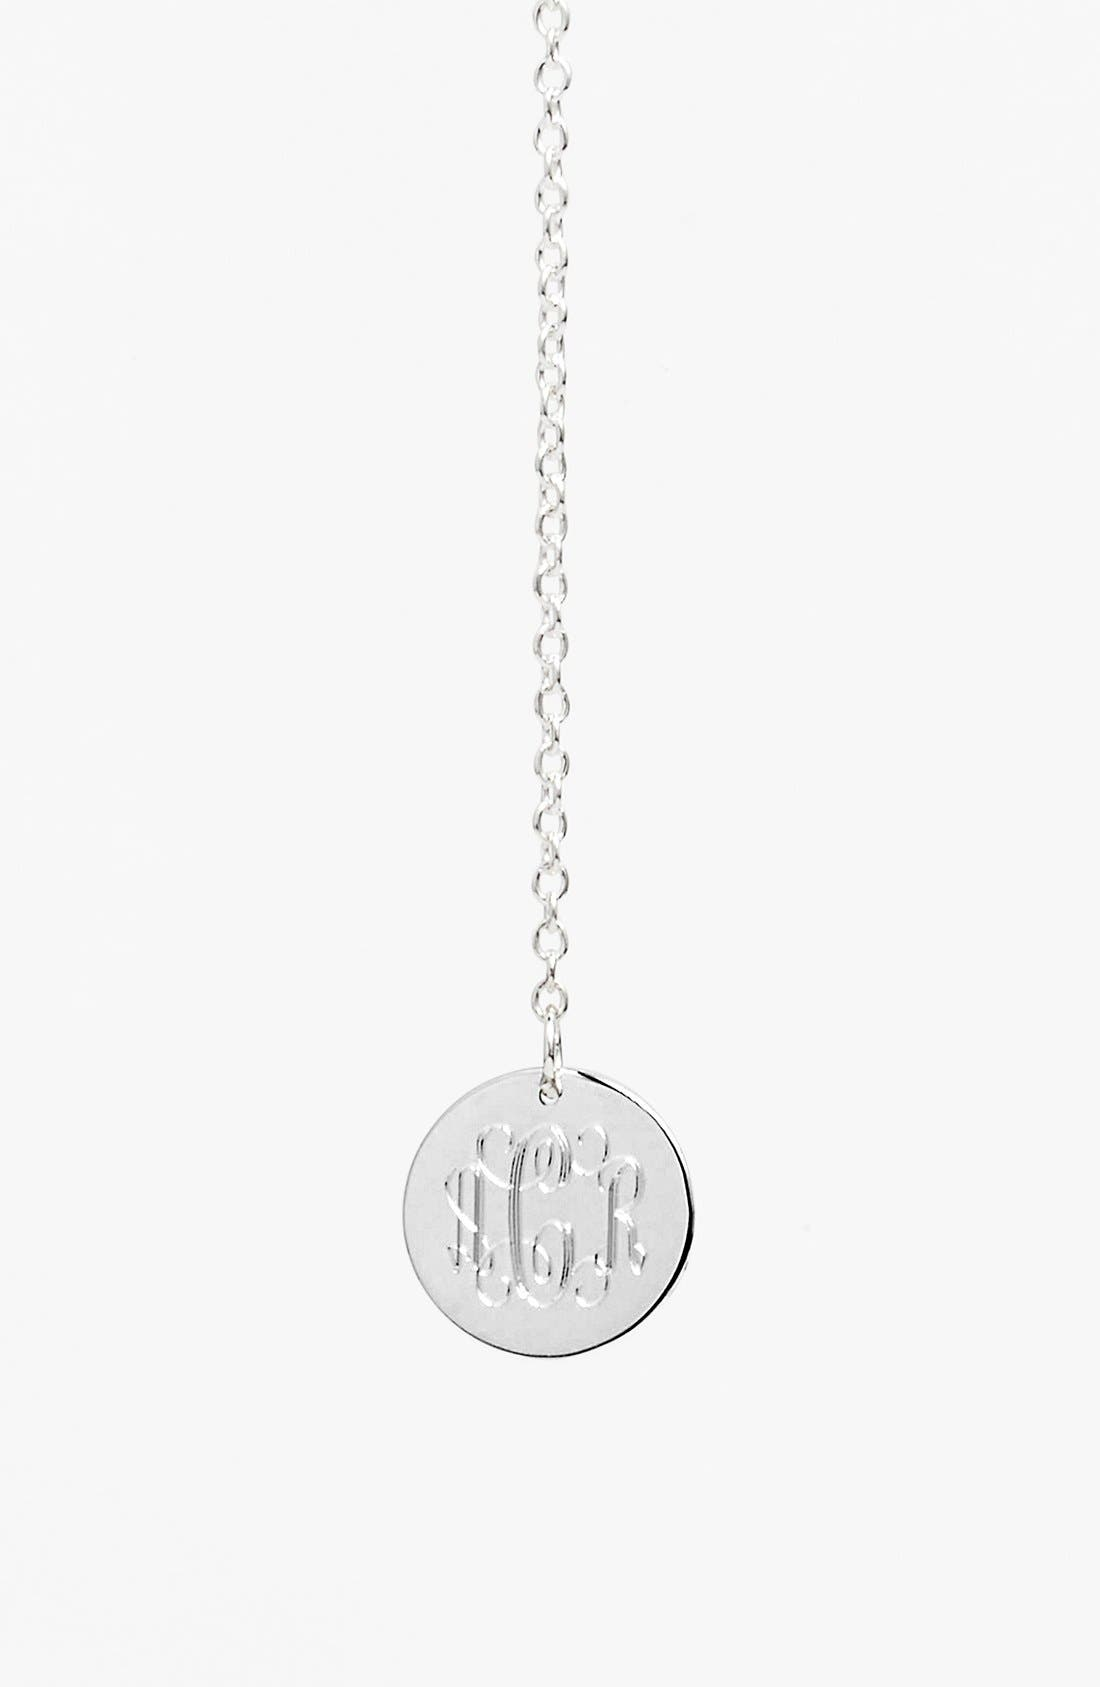 Personalized Y-Necklace,                             Alternate thumbnail 2, color,                             040